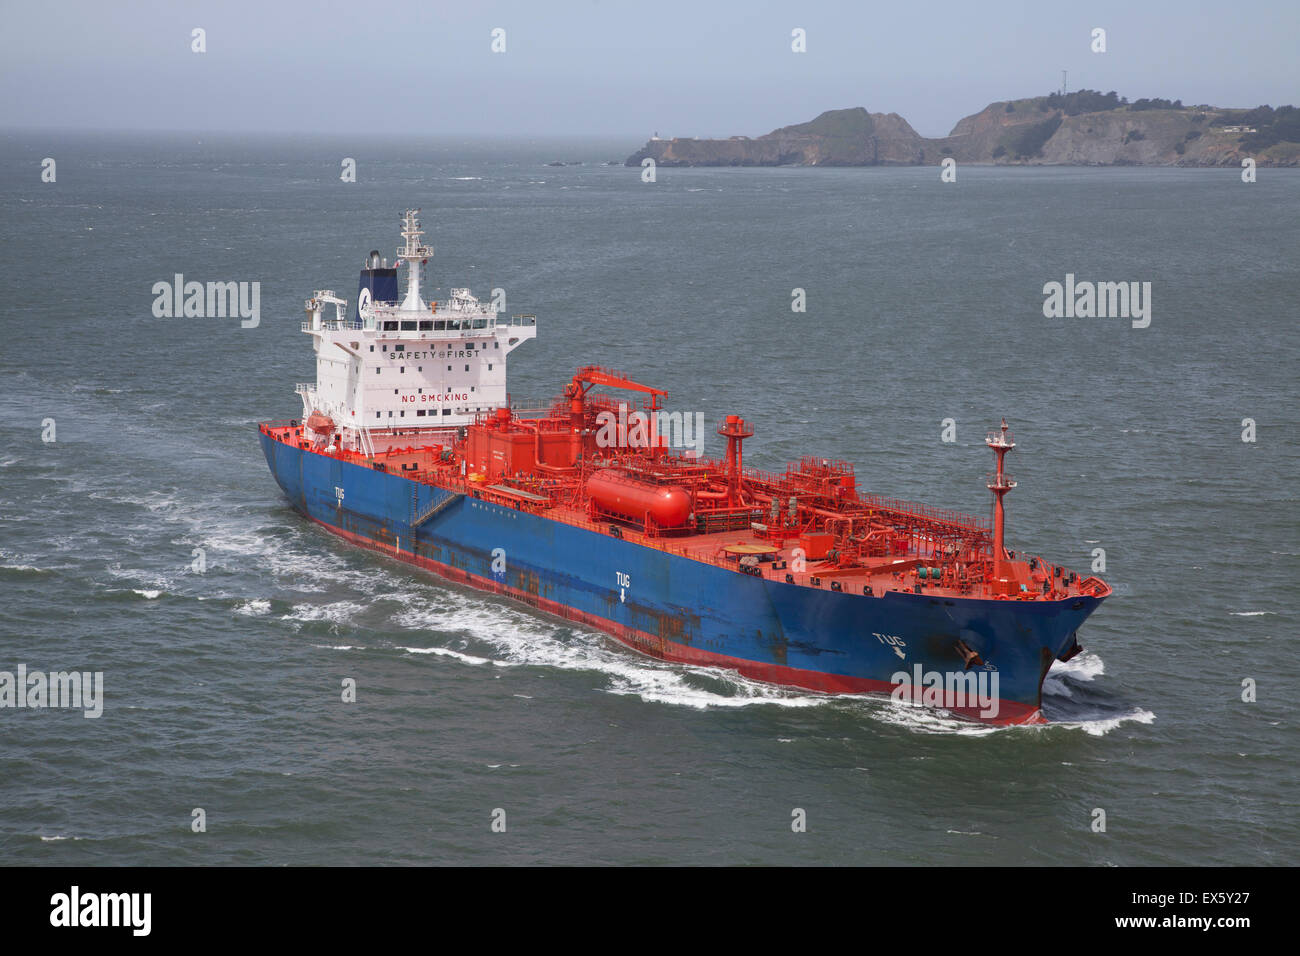 Ship bulk carrier at sea - Stock Image